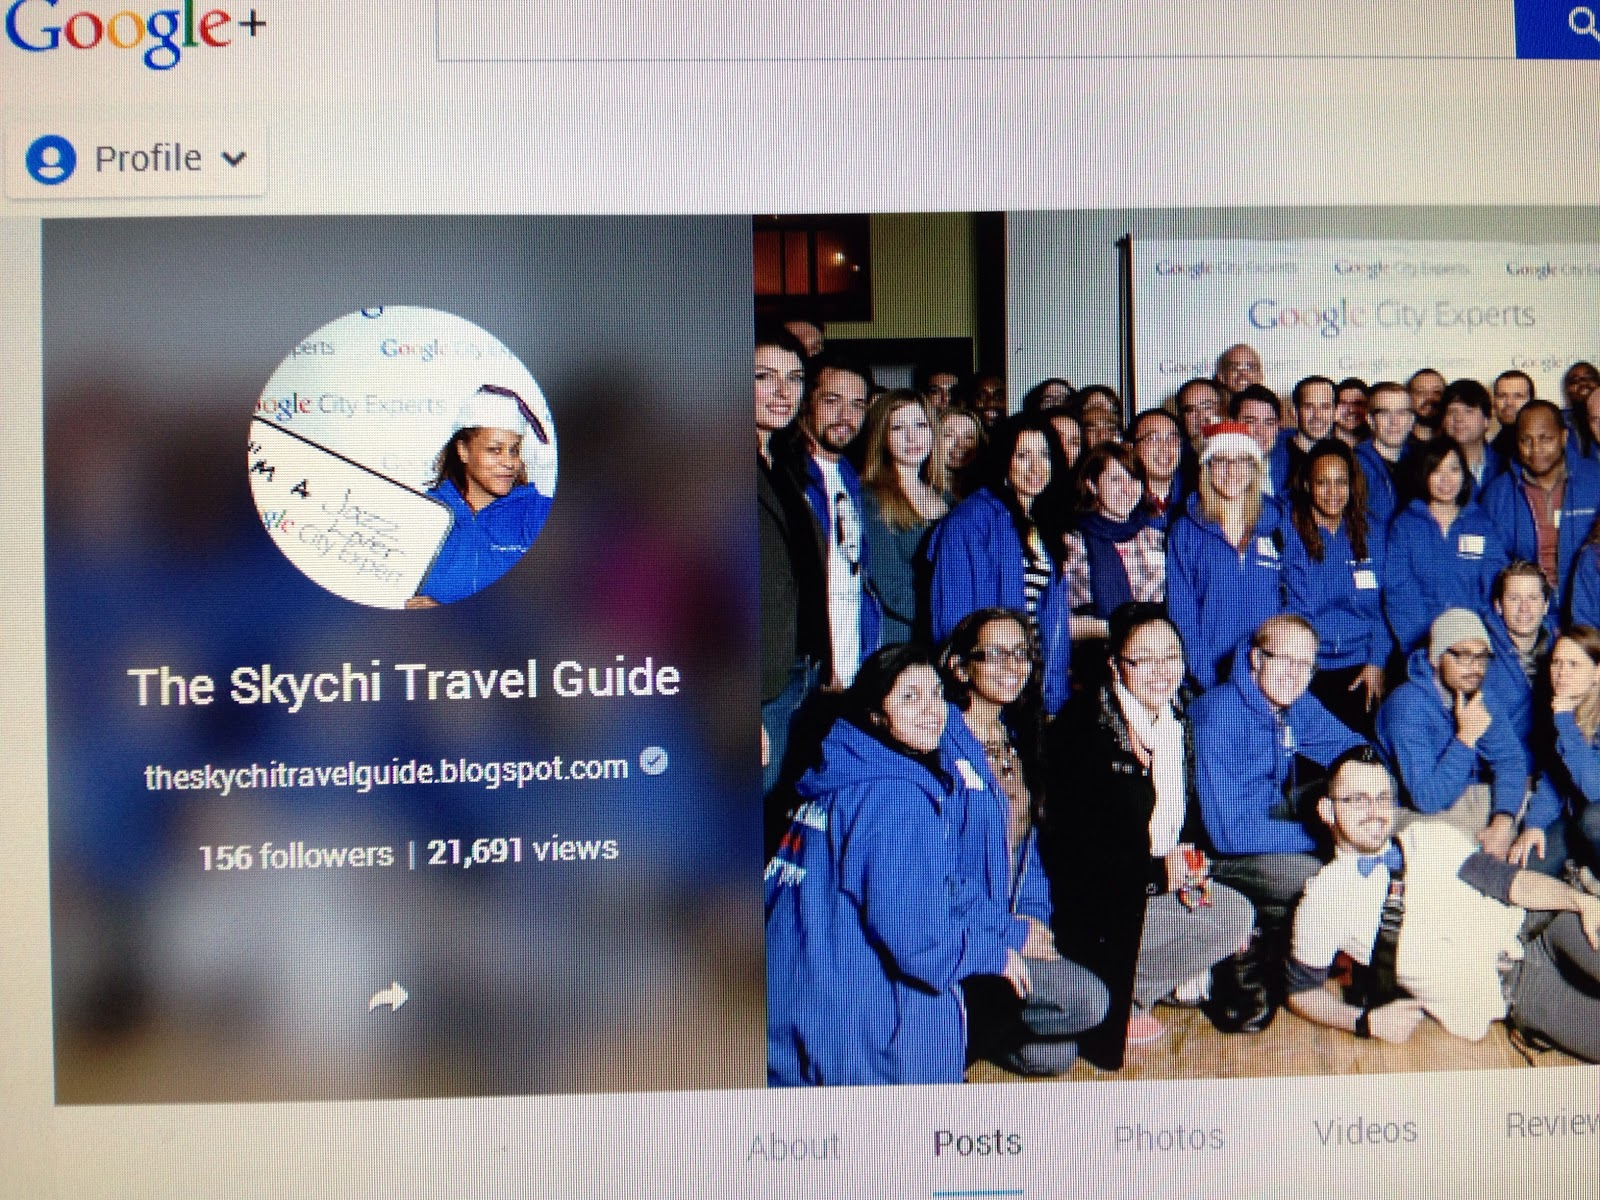 The Skychi Travel Guide Google Plus Page